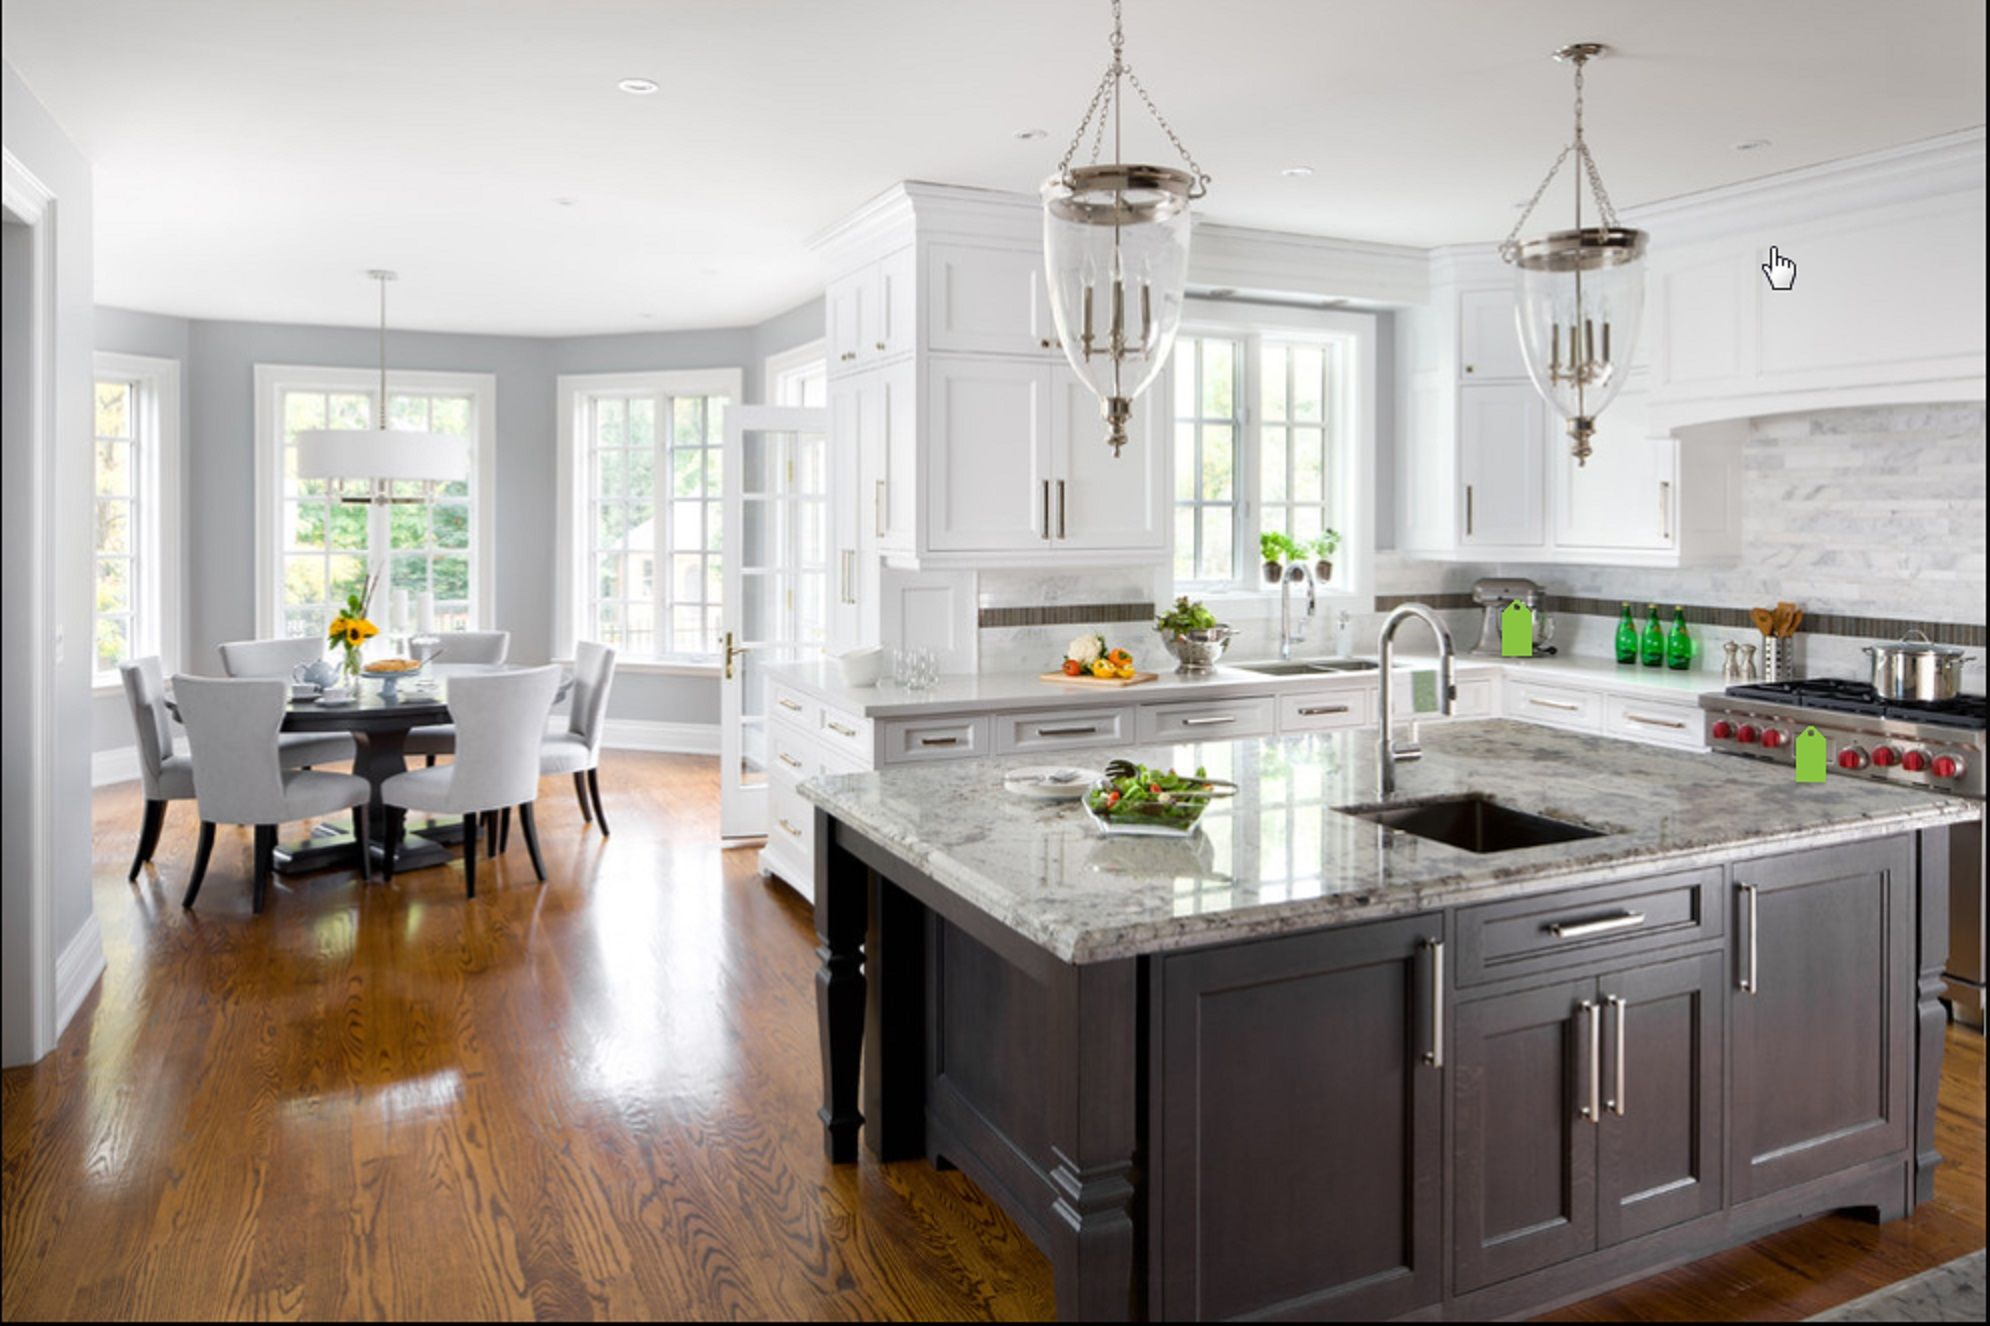 Hilary Farr Kitchen Designs Related Keywords Hilary Farr Kitchen - Hilary farr kitchen designs